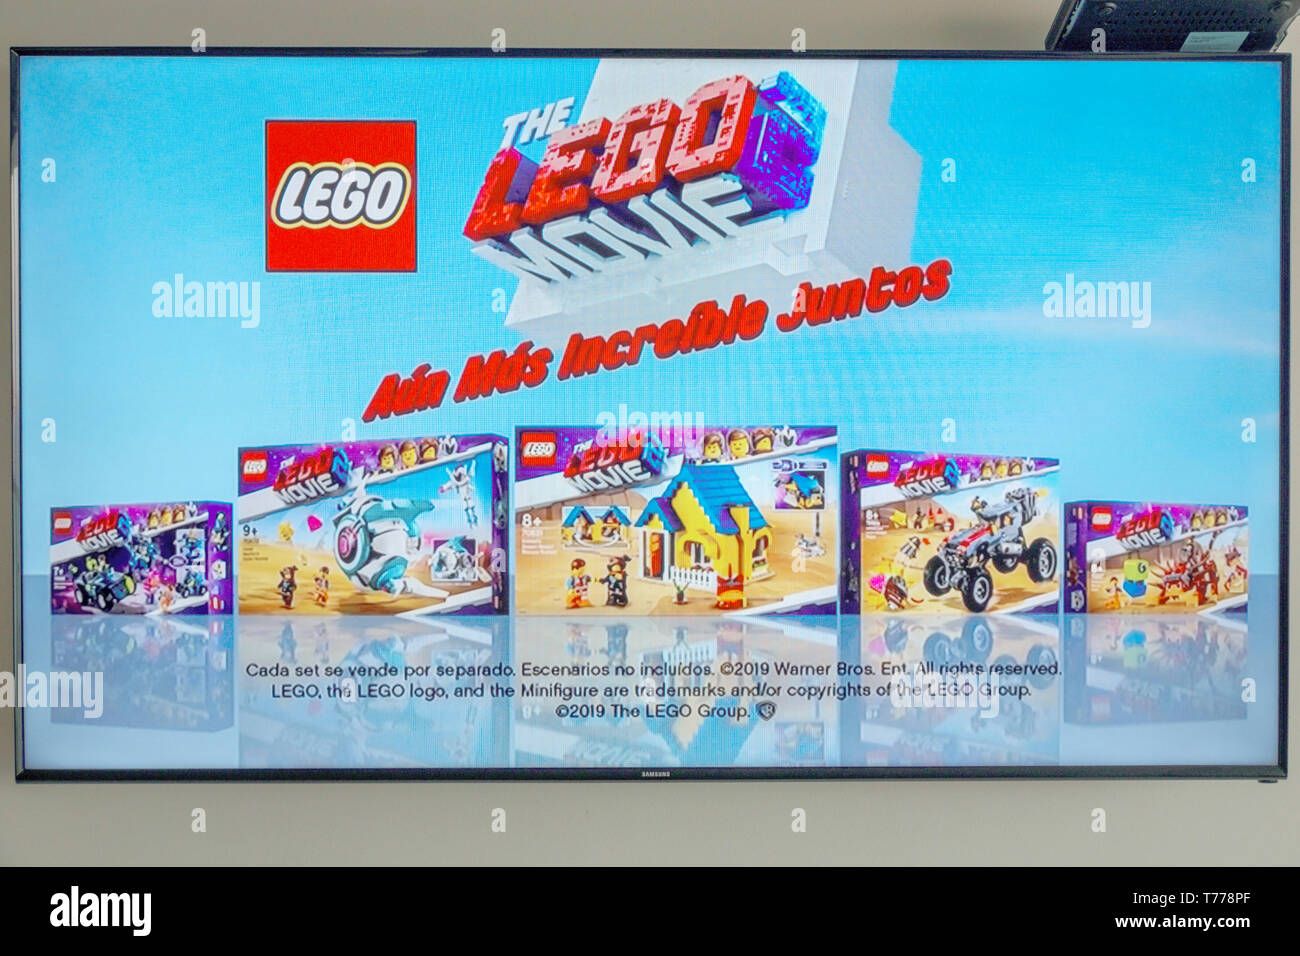 Colombia Cartagena Tv Television Monitor Screen Flat Screen Ad Advertisement Toy Lego Movie Spanish Language Sightseeing Visitors Travel Travel Stock Photo Alamy